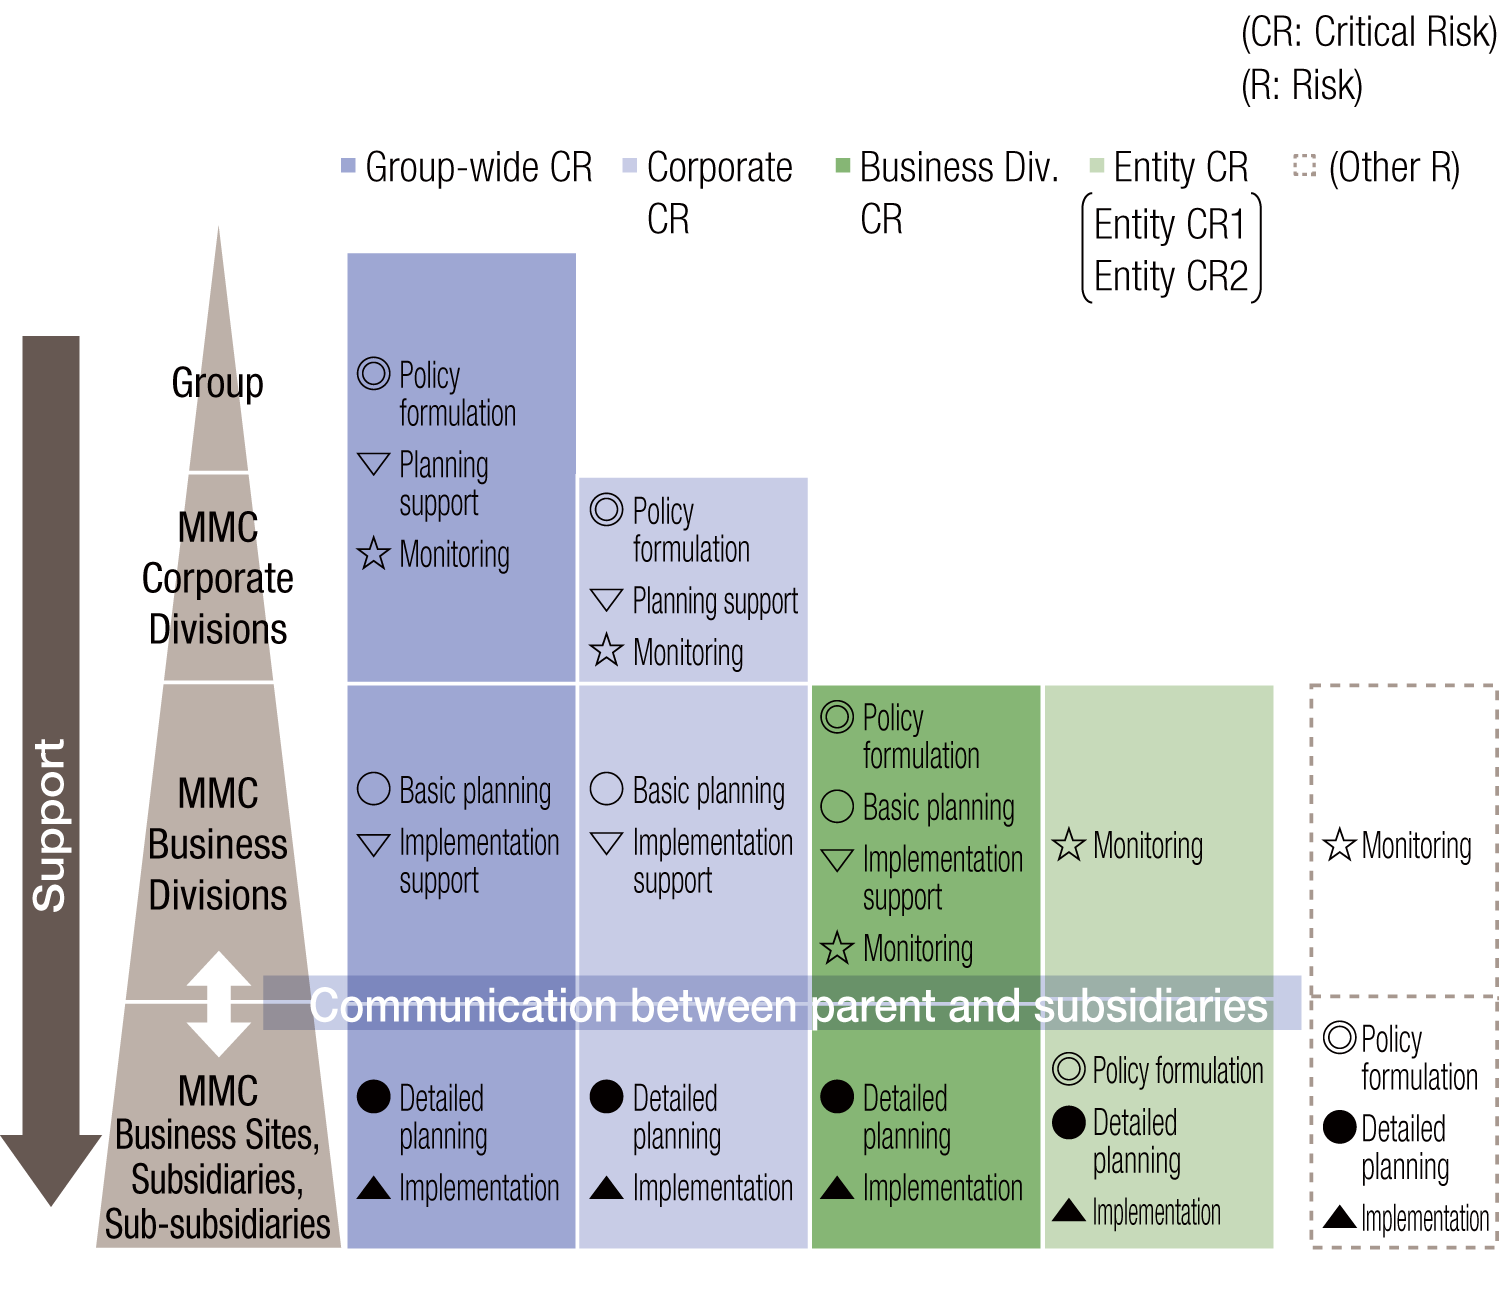 Roles and responsibilities according to level for each critical risk